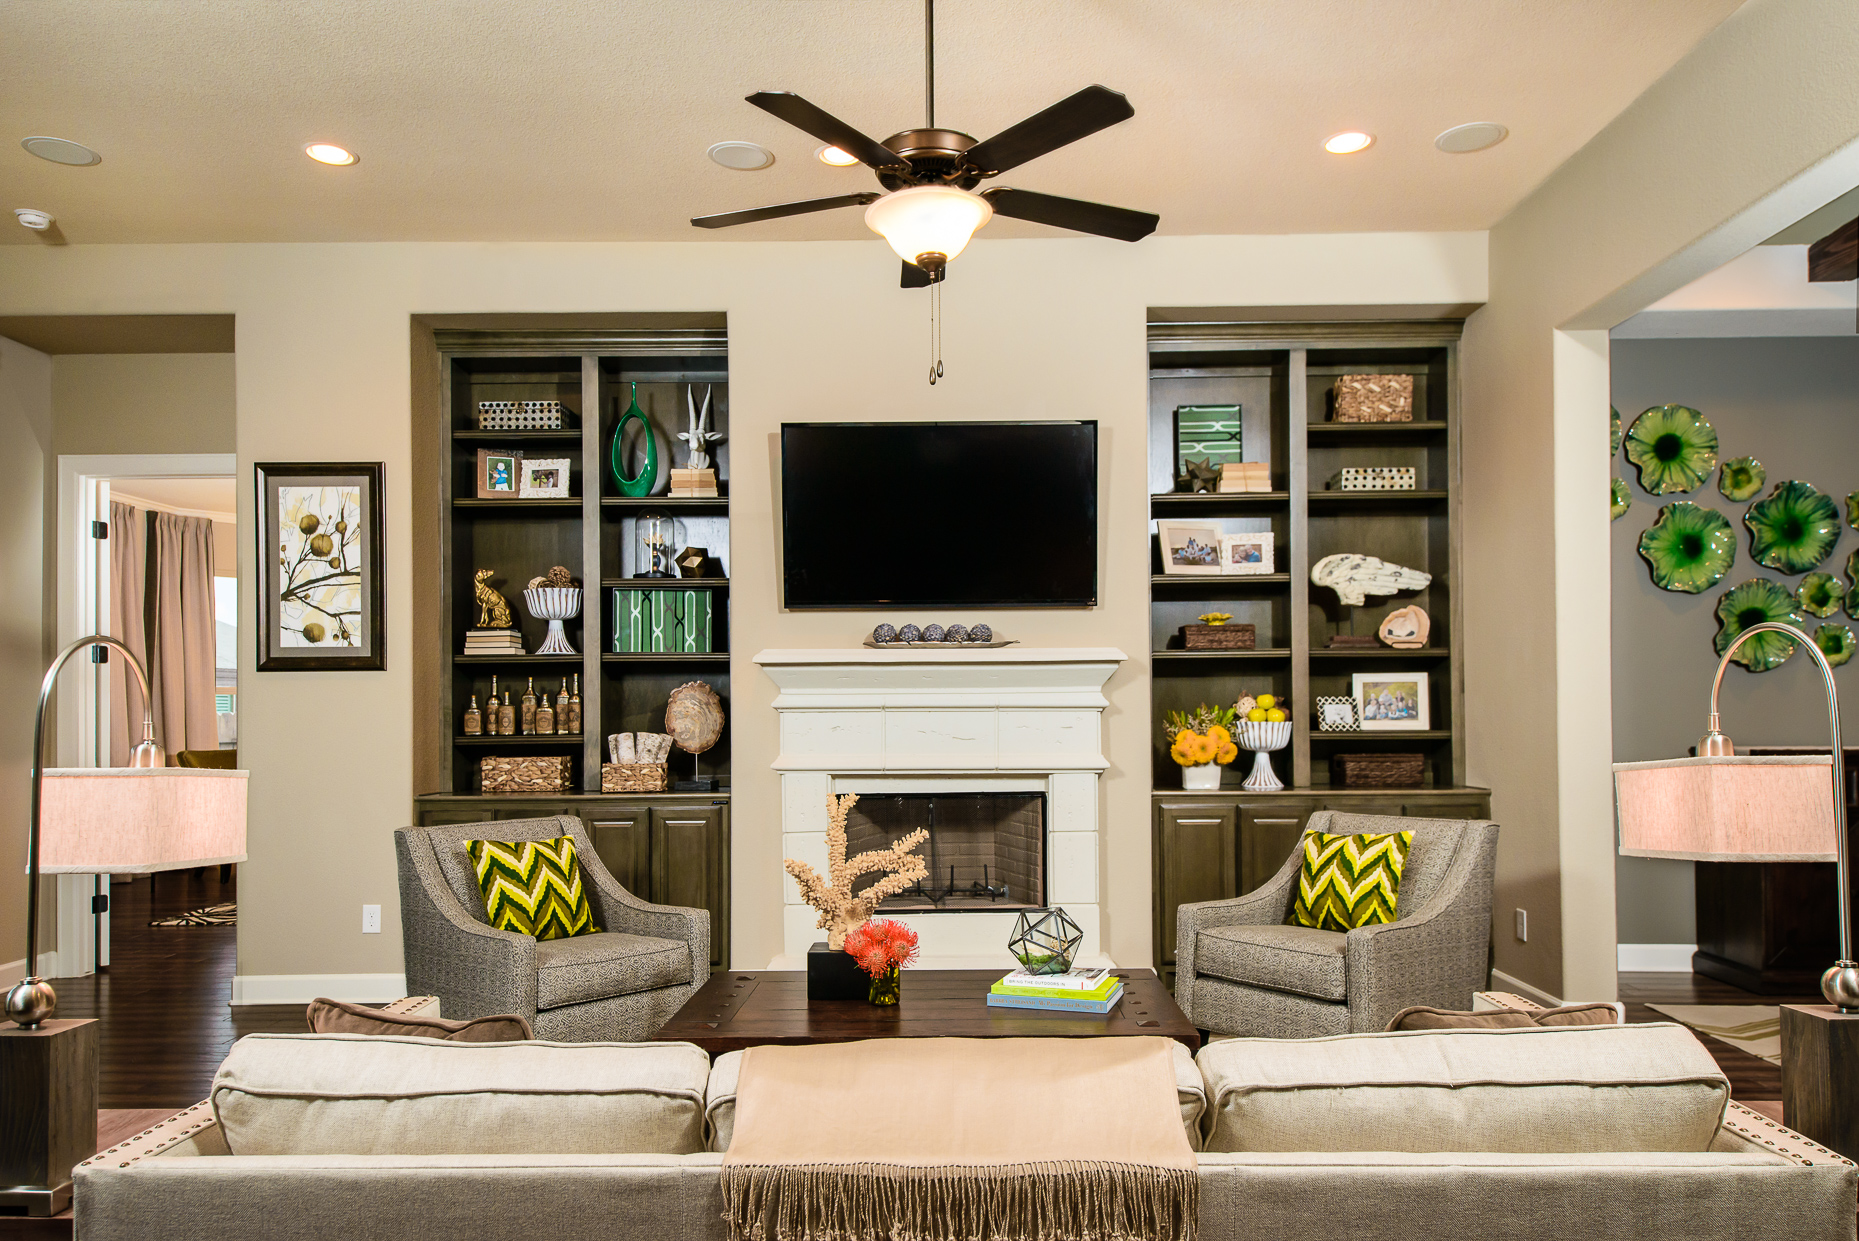 Austin-Commercial-Photographer-Interior-Design-Mary-Cook-Associates